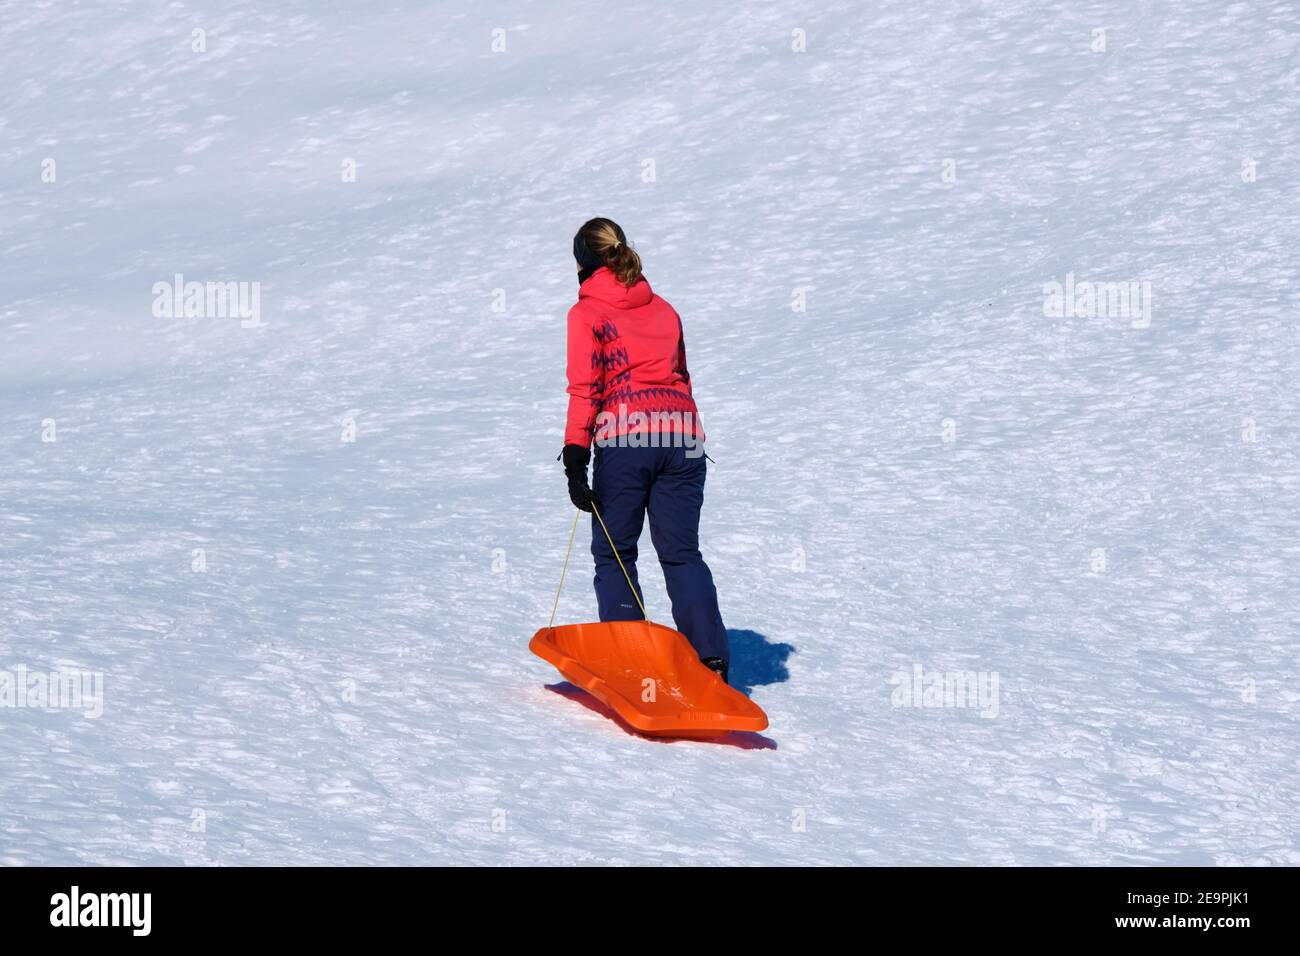 woman-pulling-an-orange-sled-up-hill-covered-in-snow-so-she-can-slide-down-a-winter-sport-in-canada-2E9PJK1.jpg